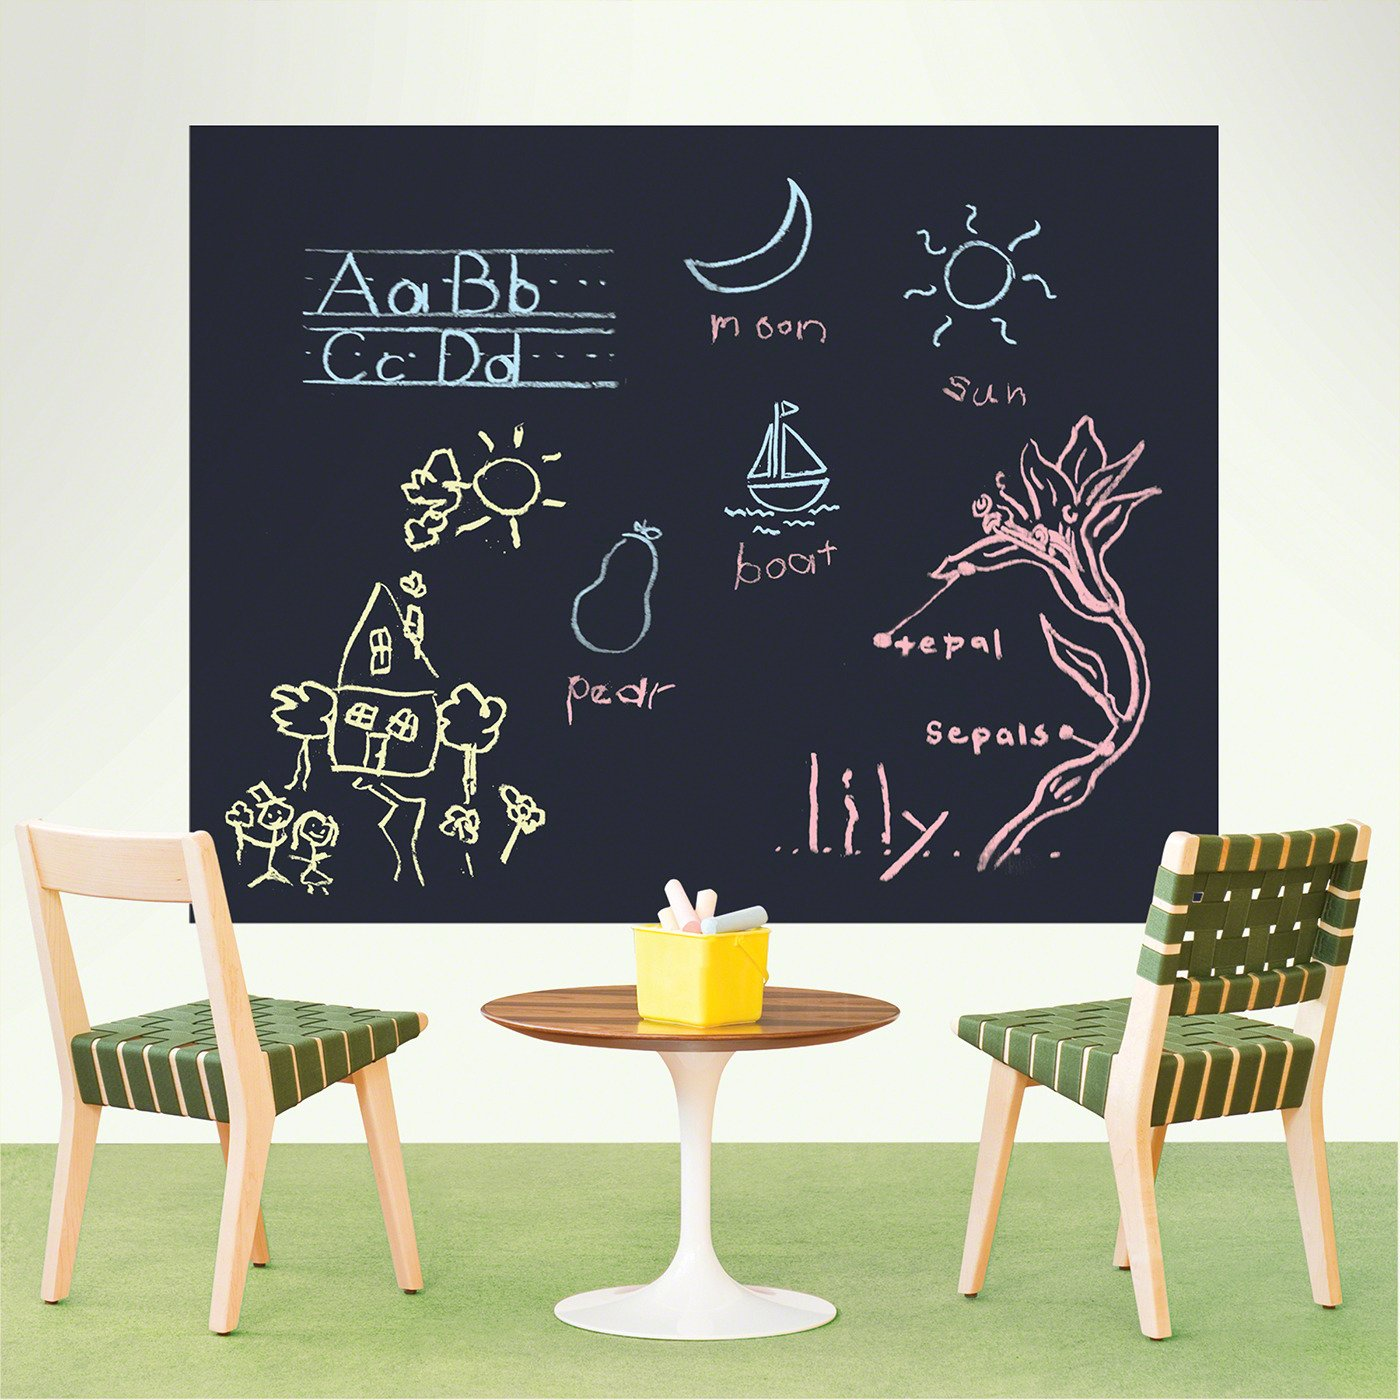 Photo 13 of 13 in 12 Playful Pieces of Art to Instantly Liven Up Your Kid's Room